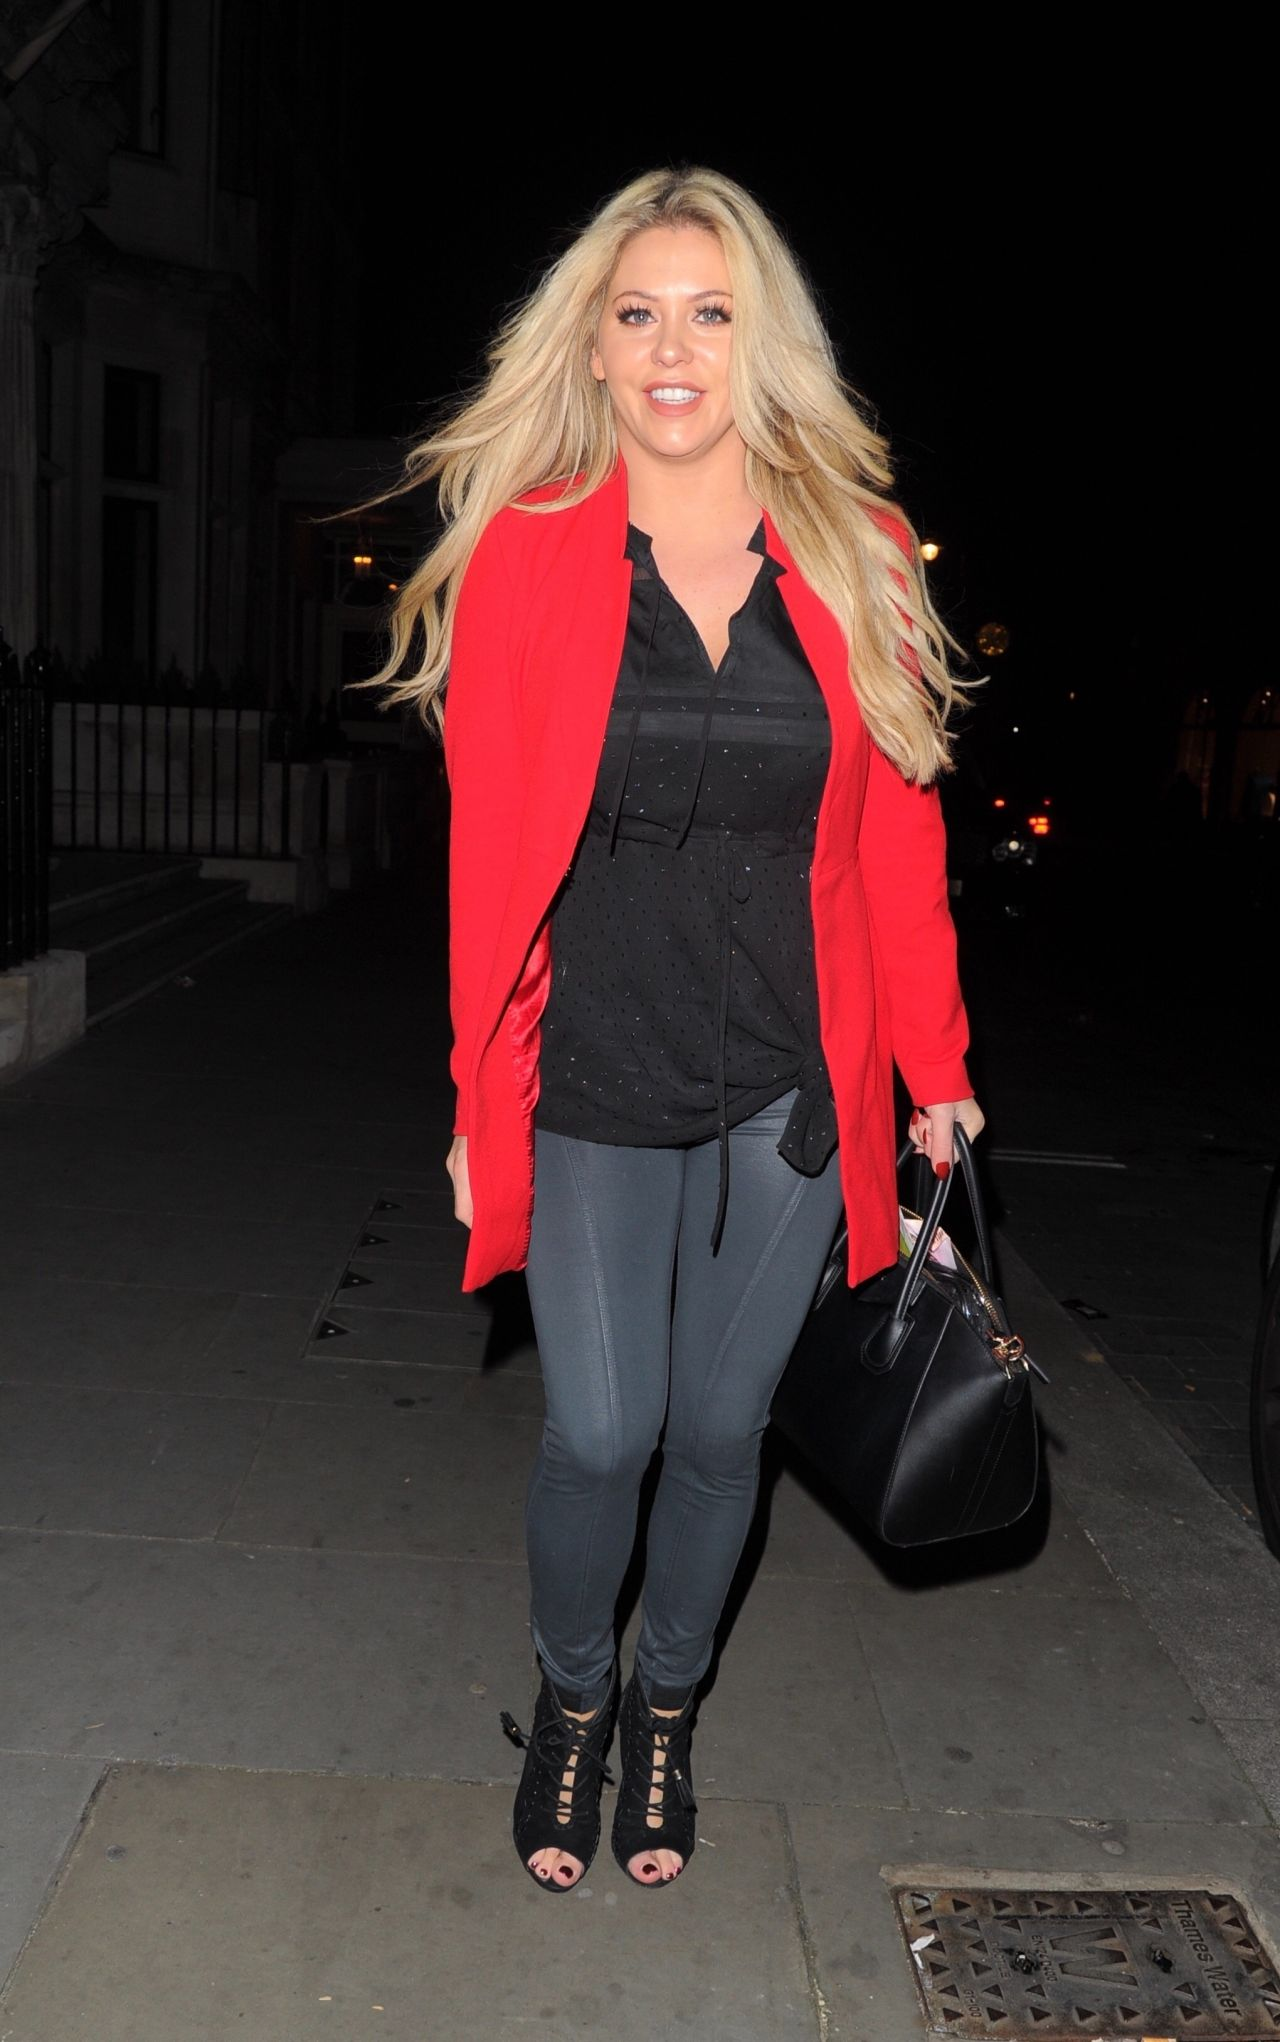 Bianca Gascoigne - Cannaught Hotel in London 12/09/2017